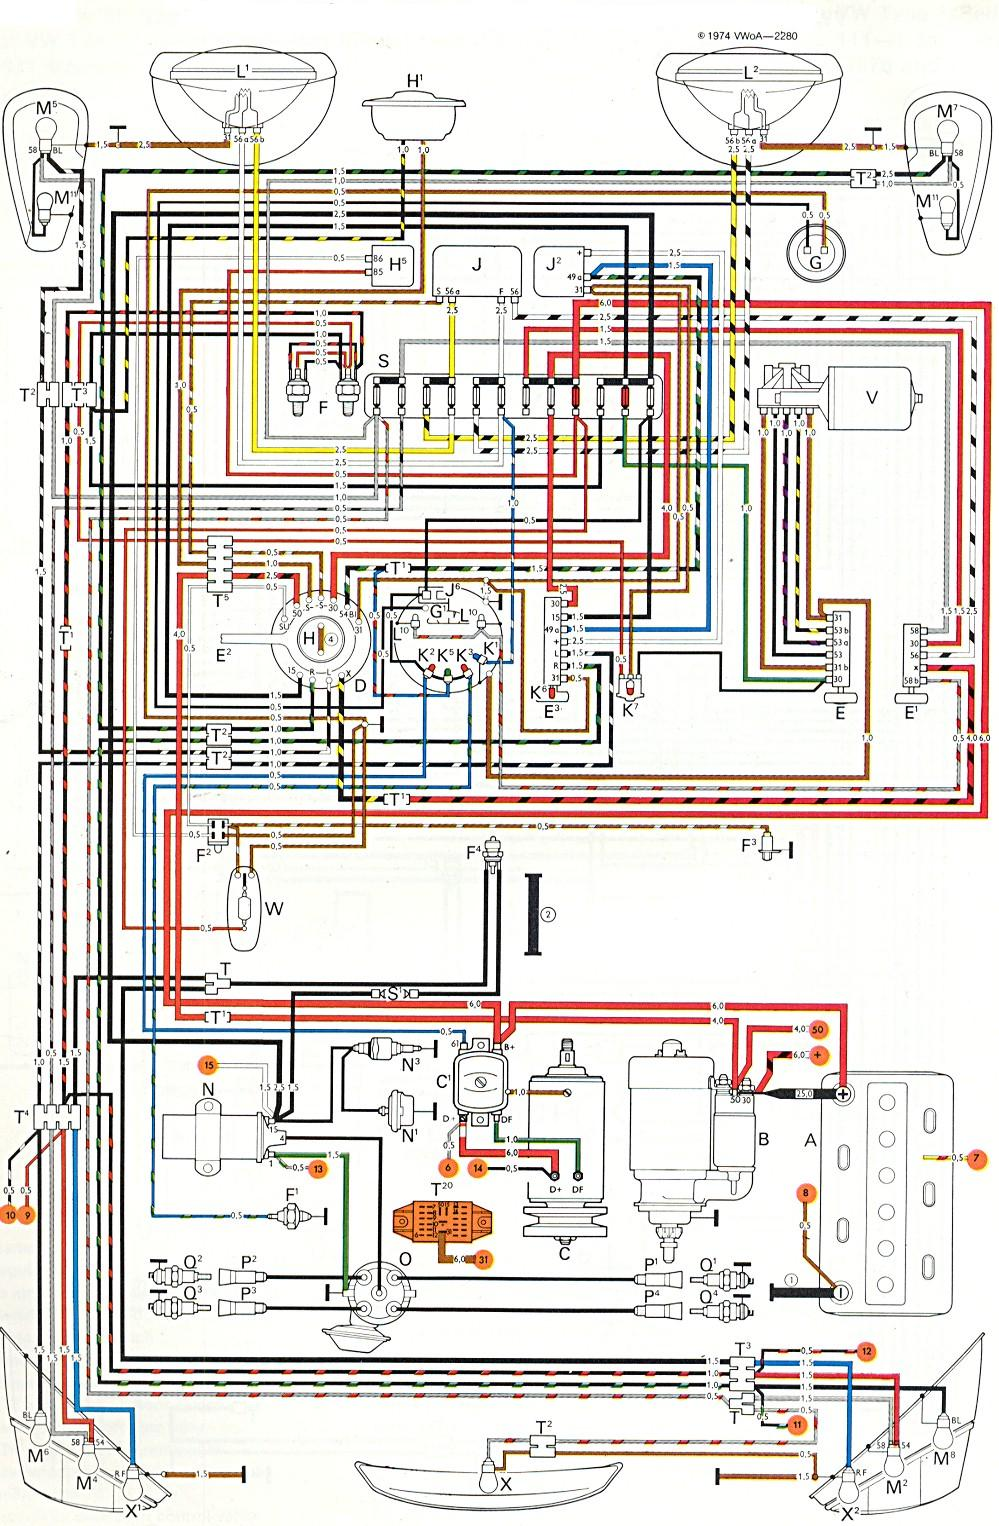 1999 Vw Beetle Fuse Diagram Volkswagen Automotive Taylor Dunn Wiring Diagrams Online